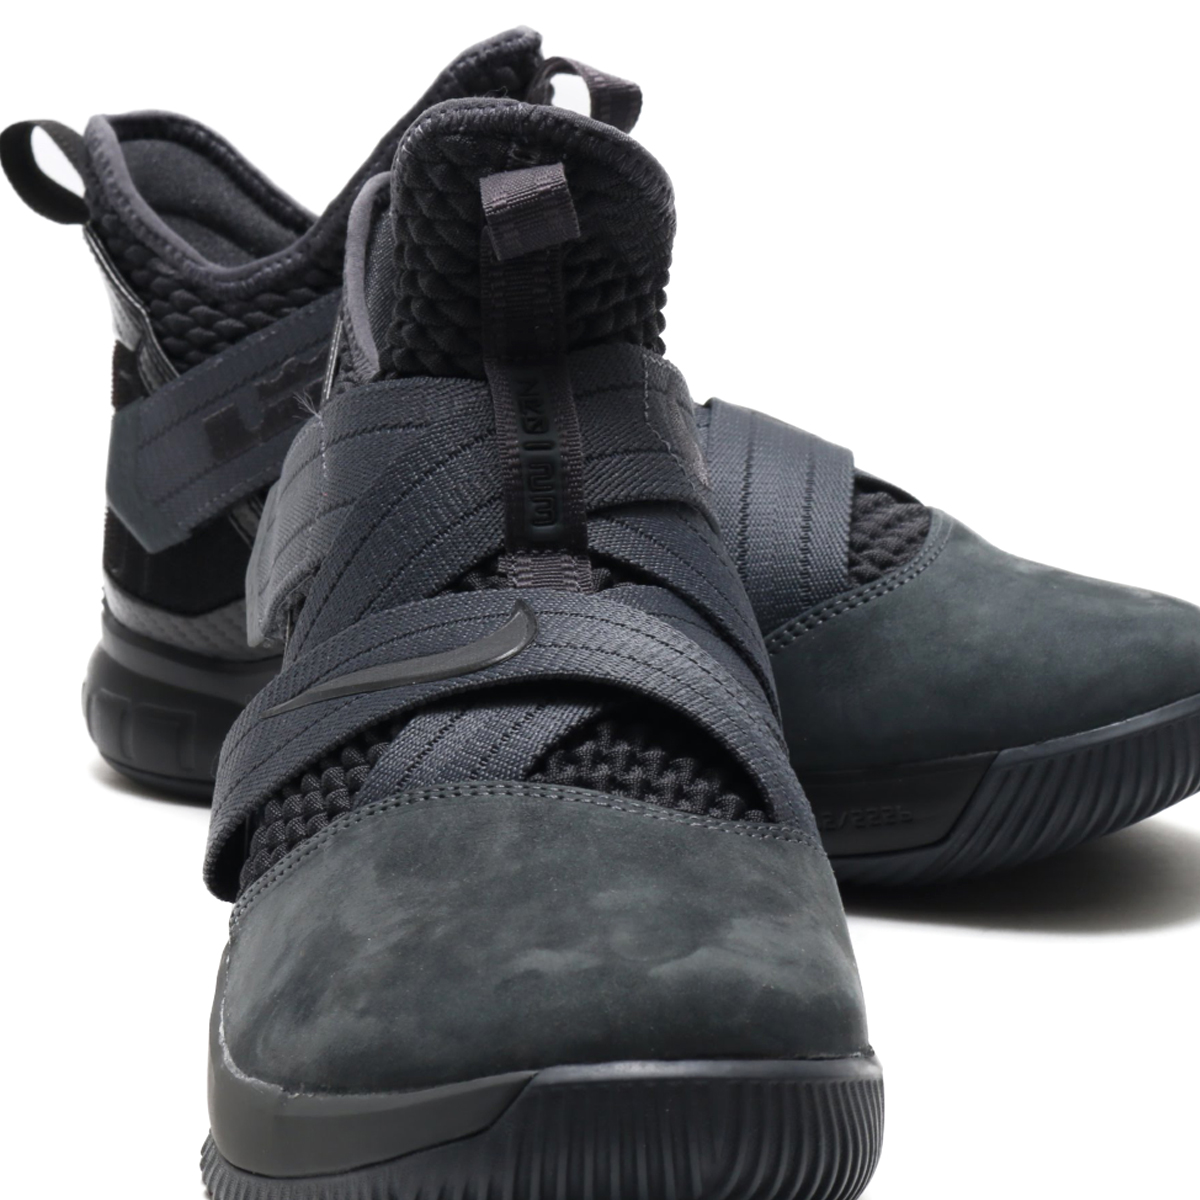 low priced 2581f 553af ... NIKE LEBRON SOLDIER XII SFG EP (Nike Revlon soldier XII SFG EP)  (ANTHRACITE ...